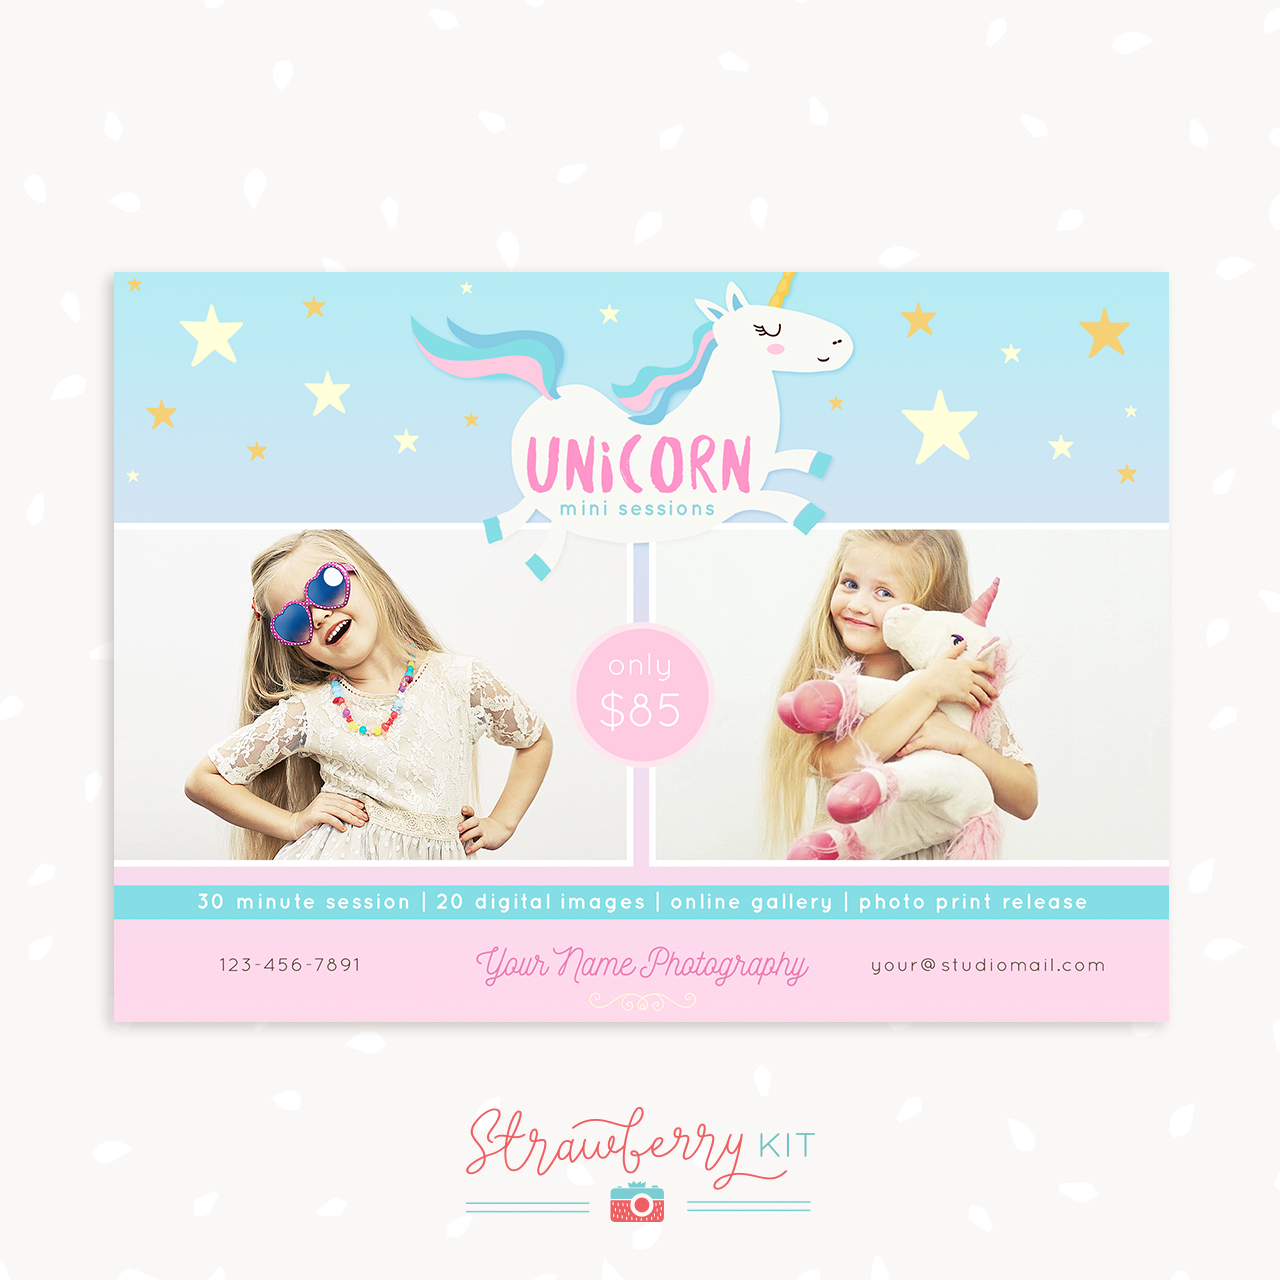 Unicorn mini sessions template